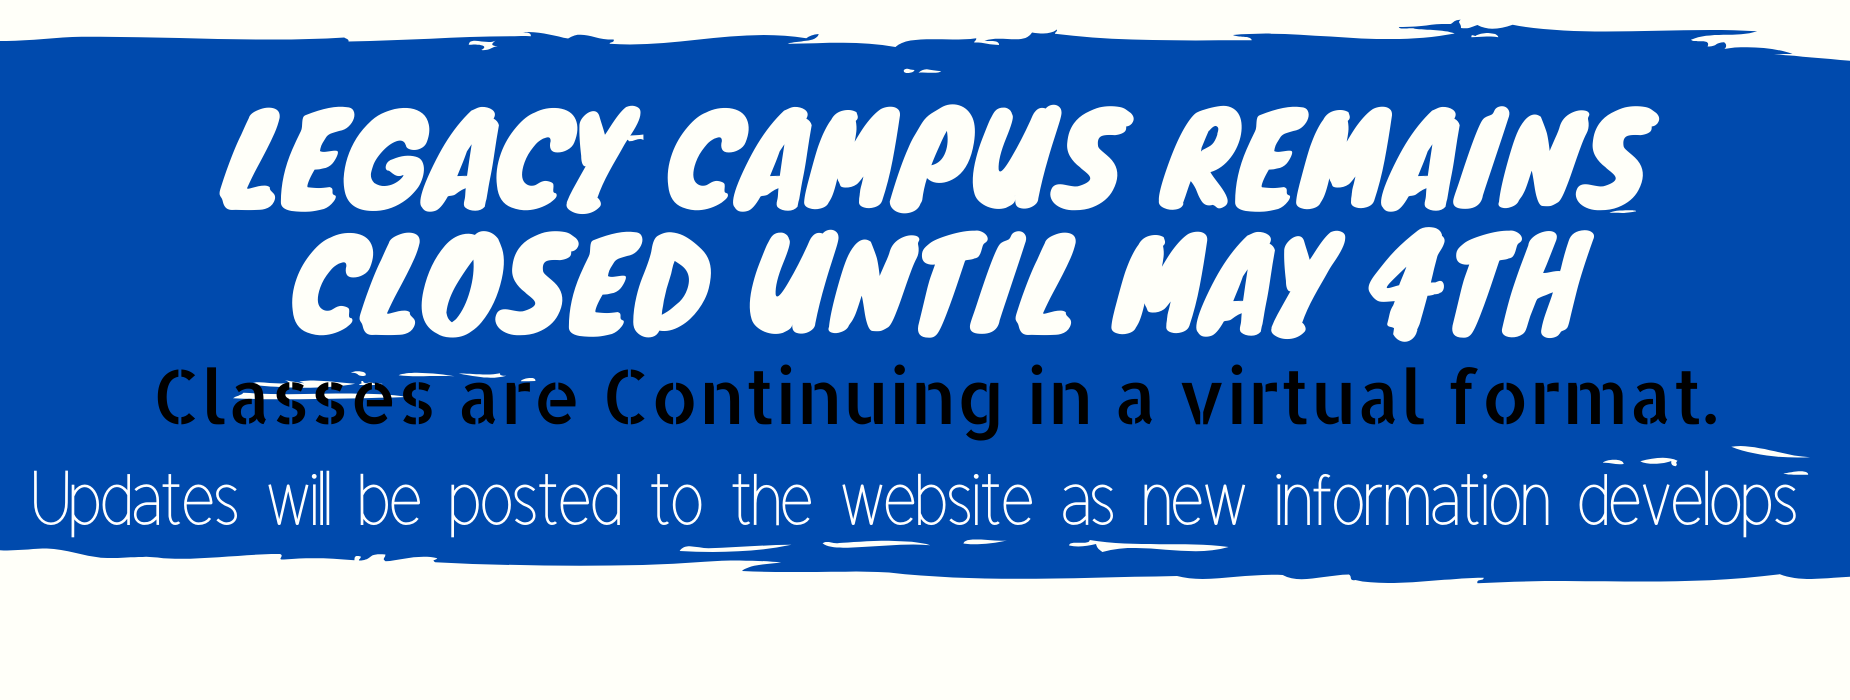 Campus closed until May 4th. Learning will continue in a virtual setting